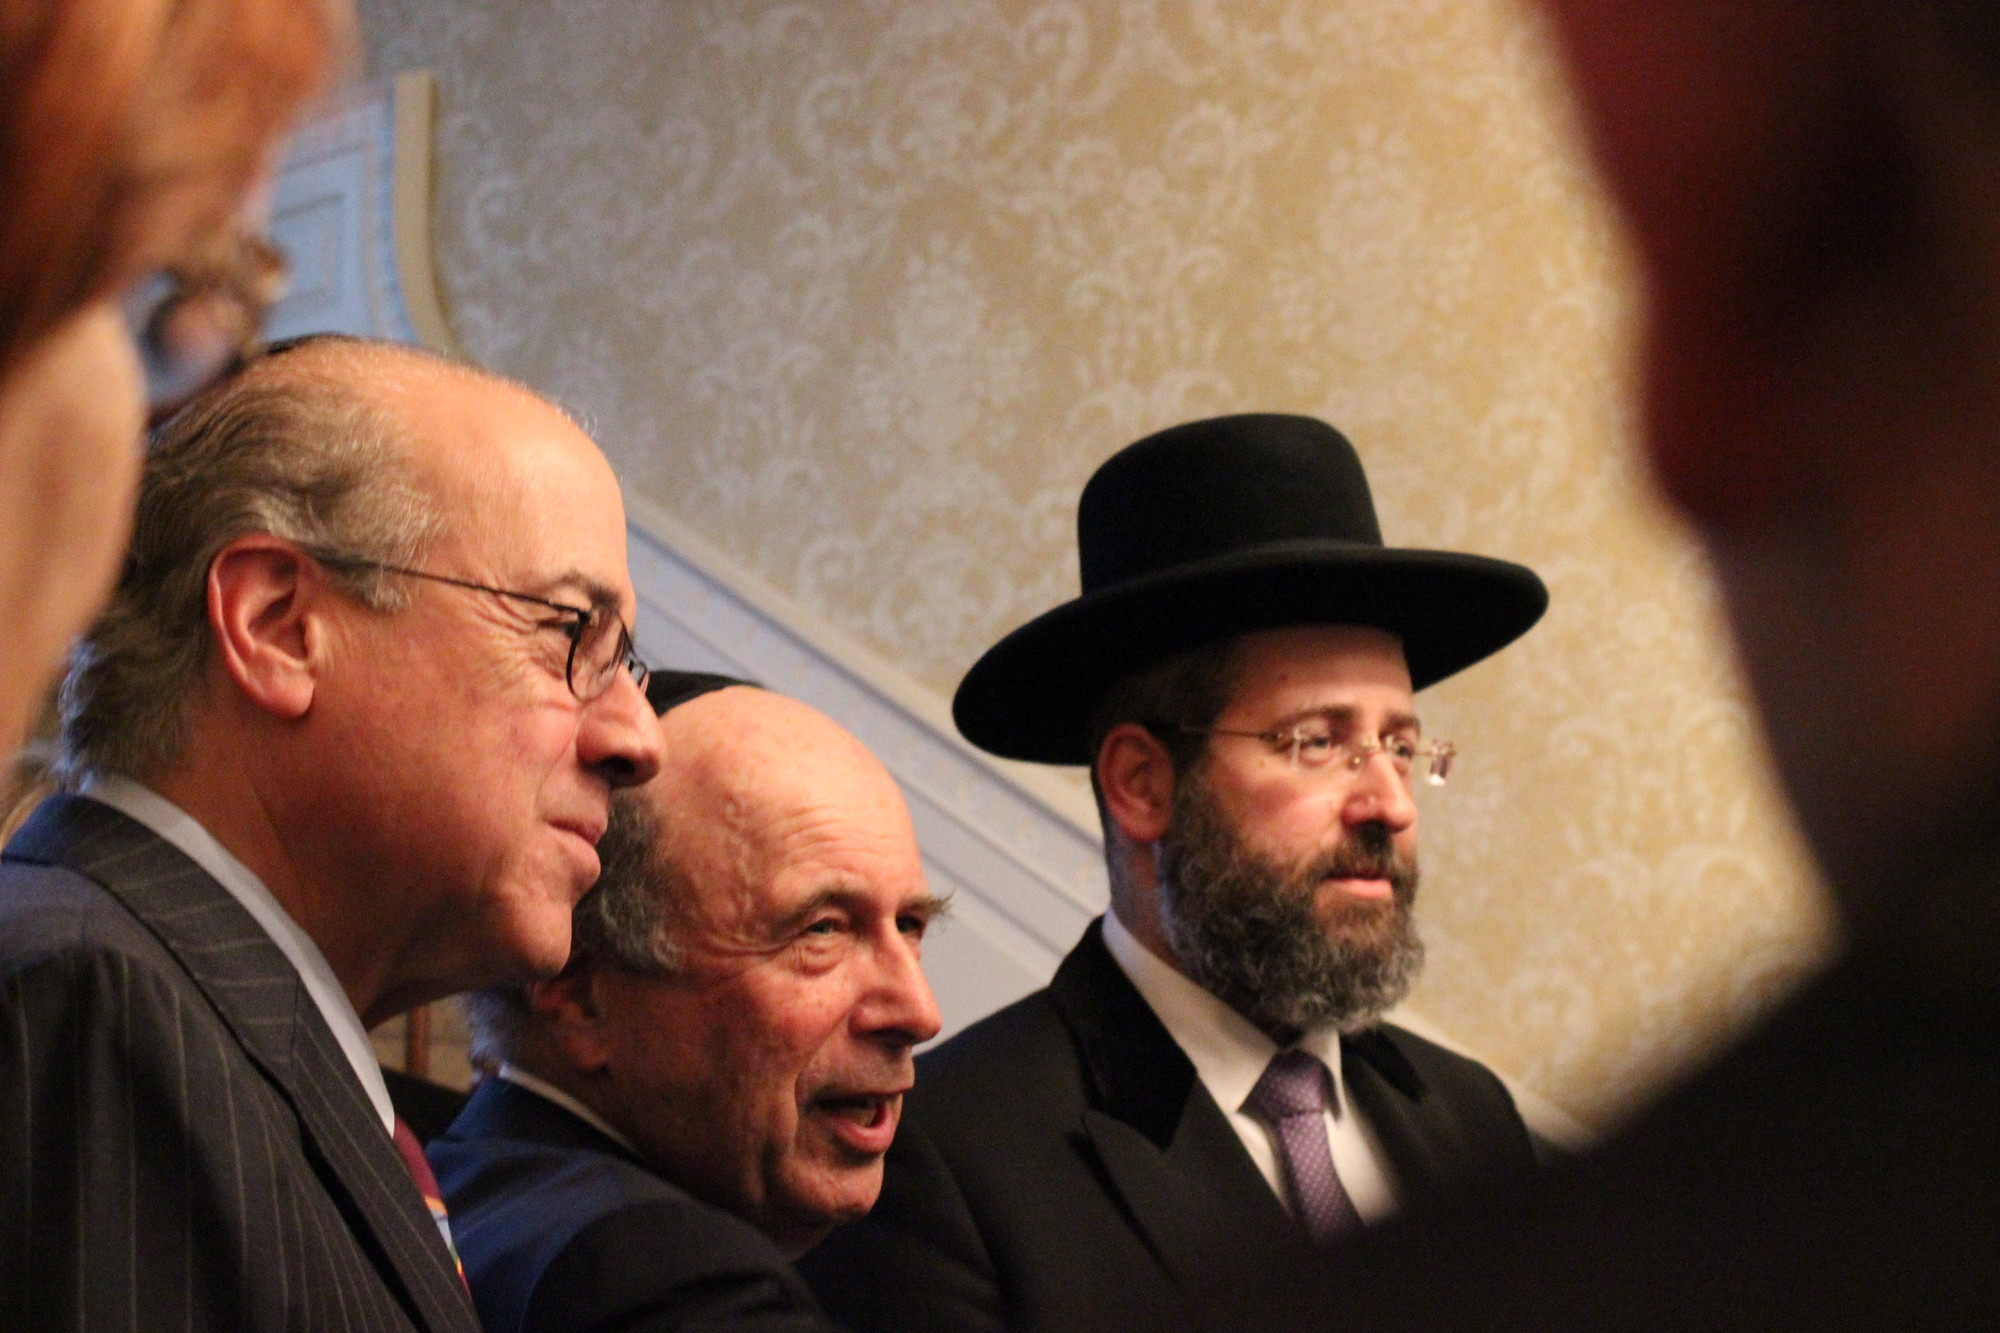 Israel's chief rabbi, greeted more than a hundred religious leaders and other guests at the home of Martin Oliner, the mayor of Lawrence village. From left were Rabbi Jay Rosenbaum, Oliner and Chief Rabbi David Lau.